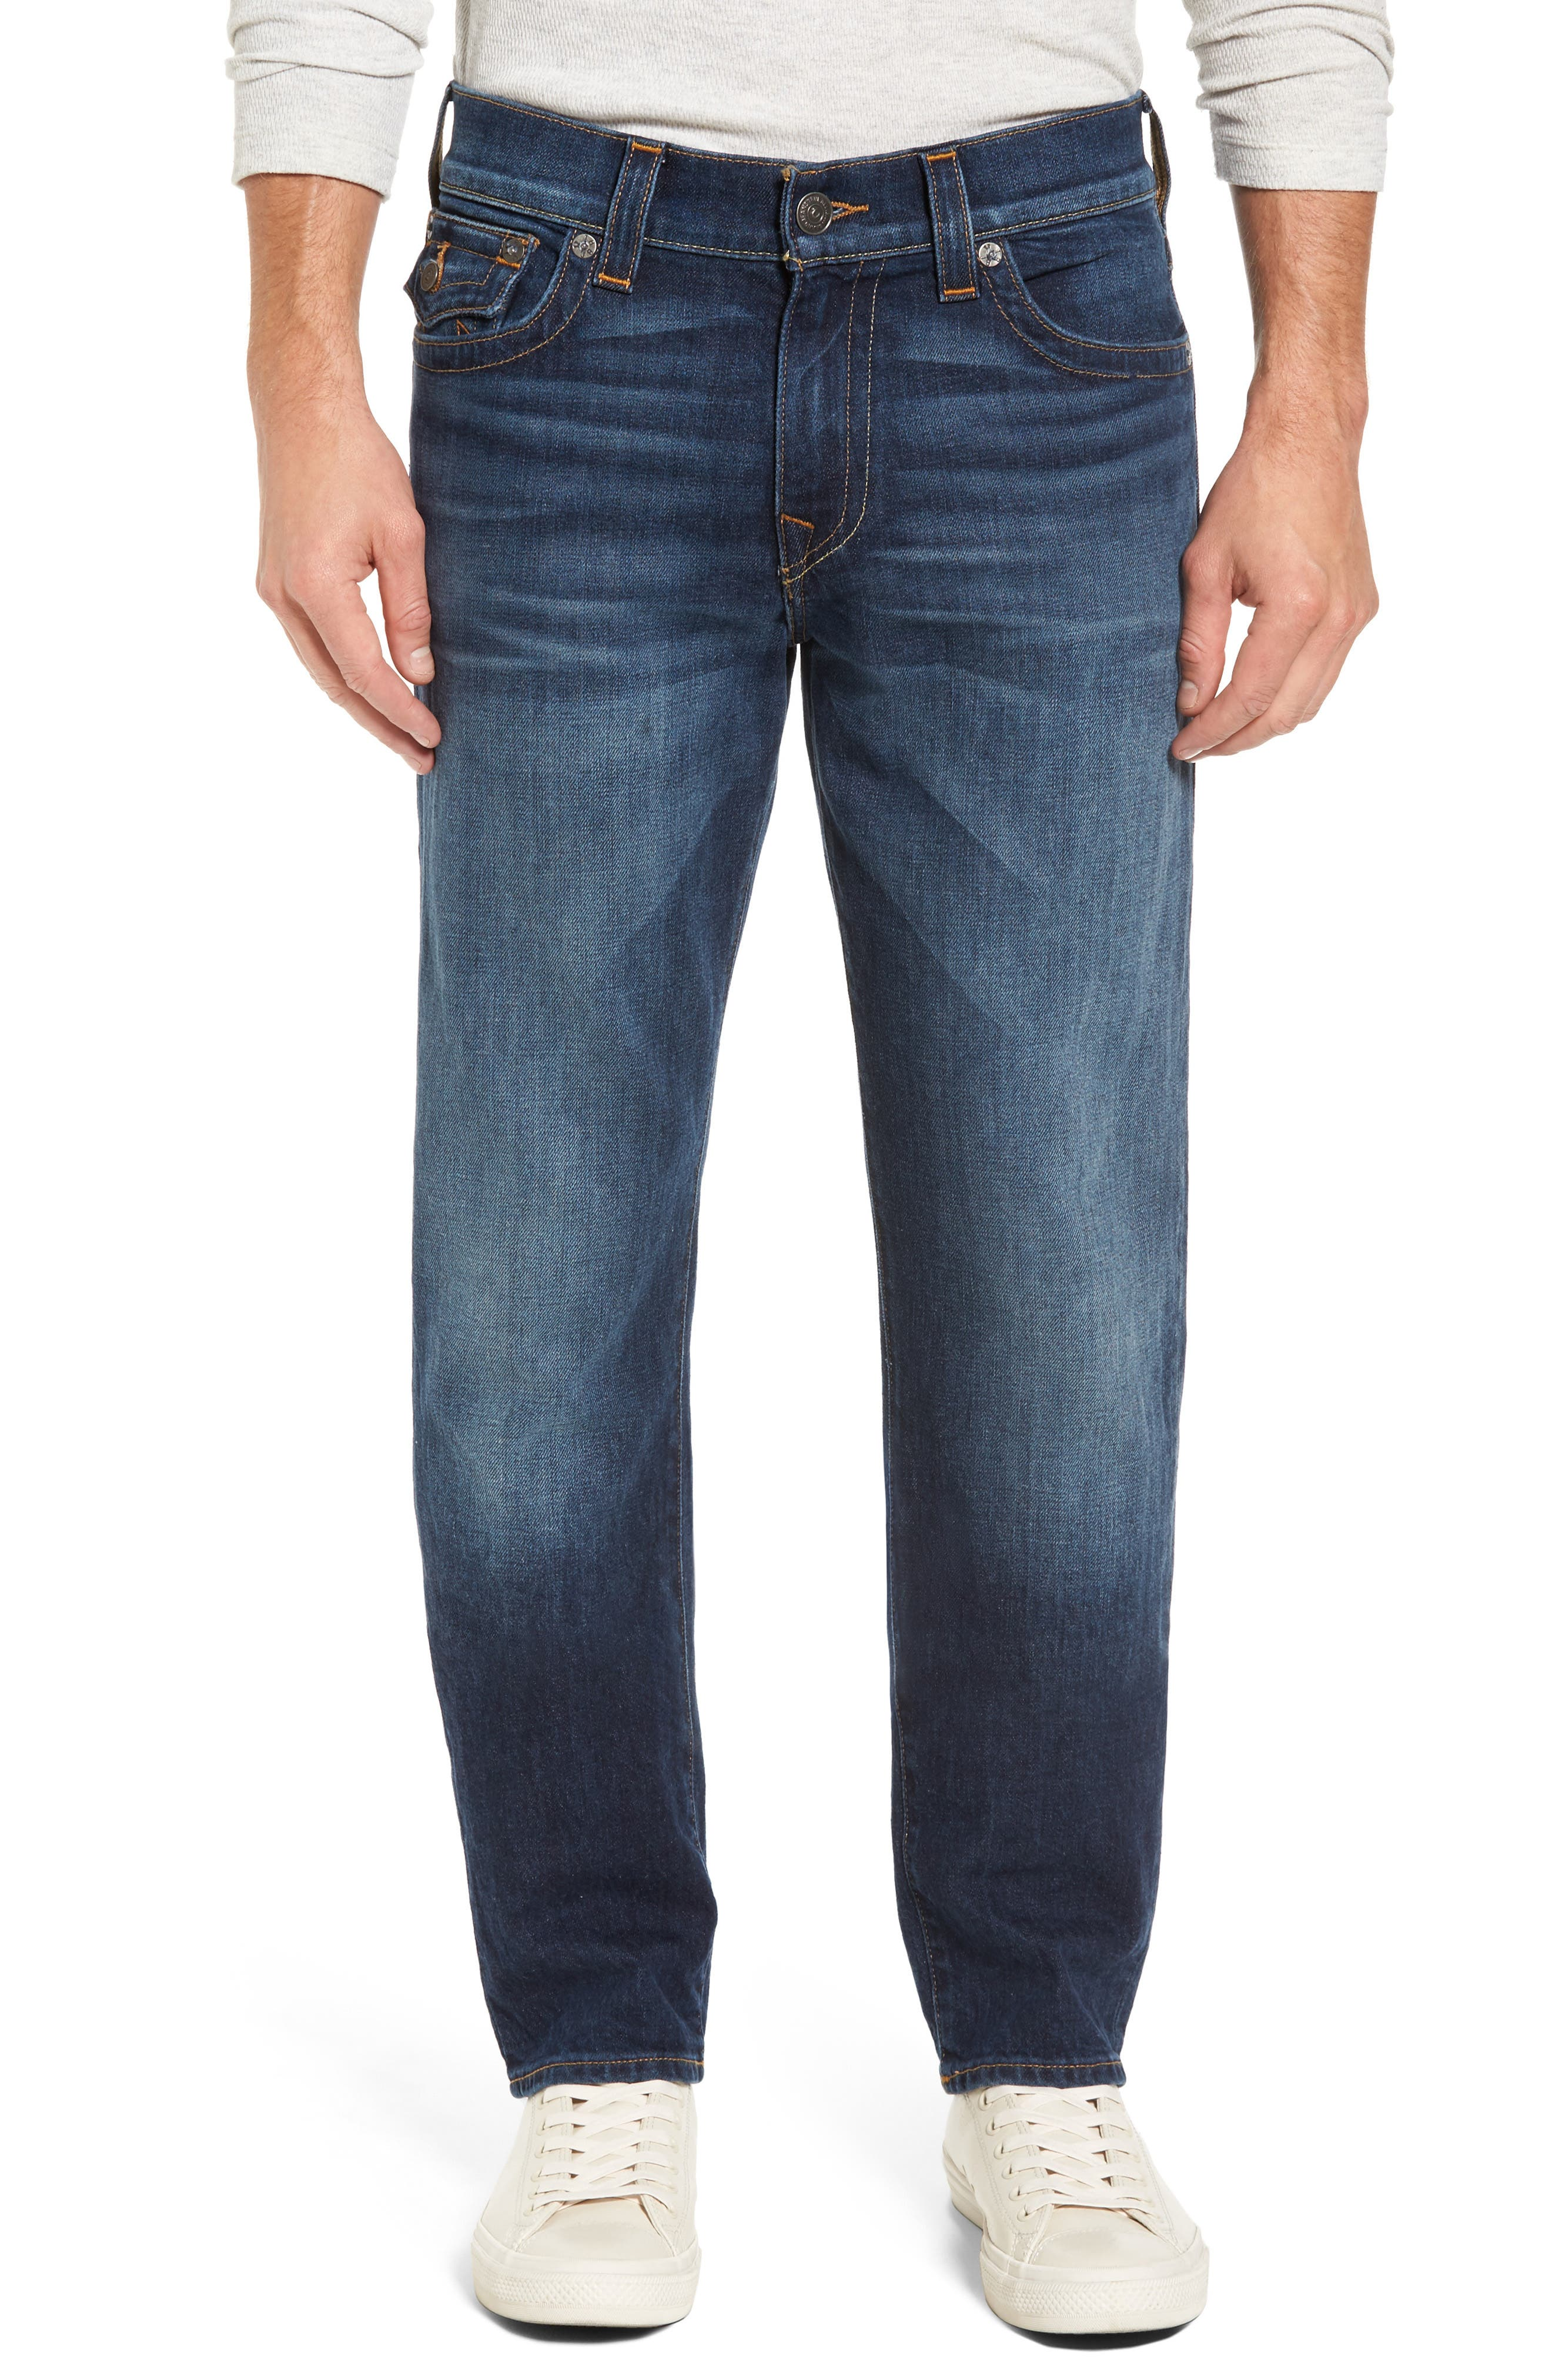 Geno Straight Leg Jeans,                             Main thumbnail 1, color,                             BLUE CASCADE